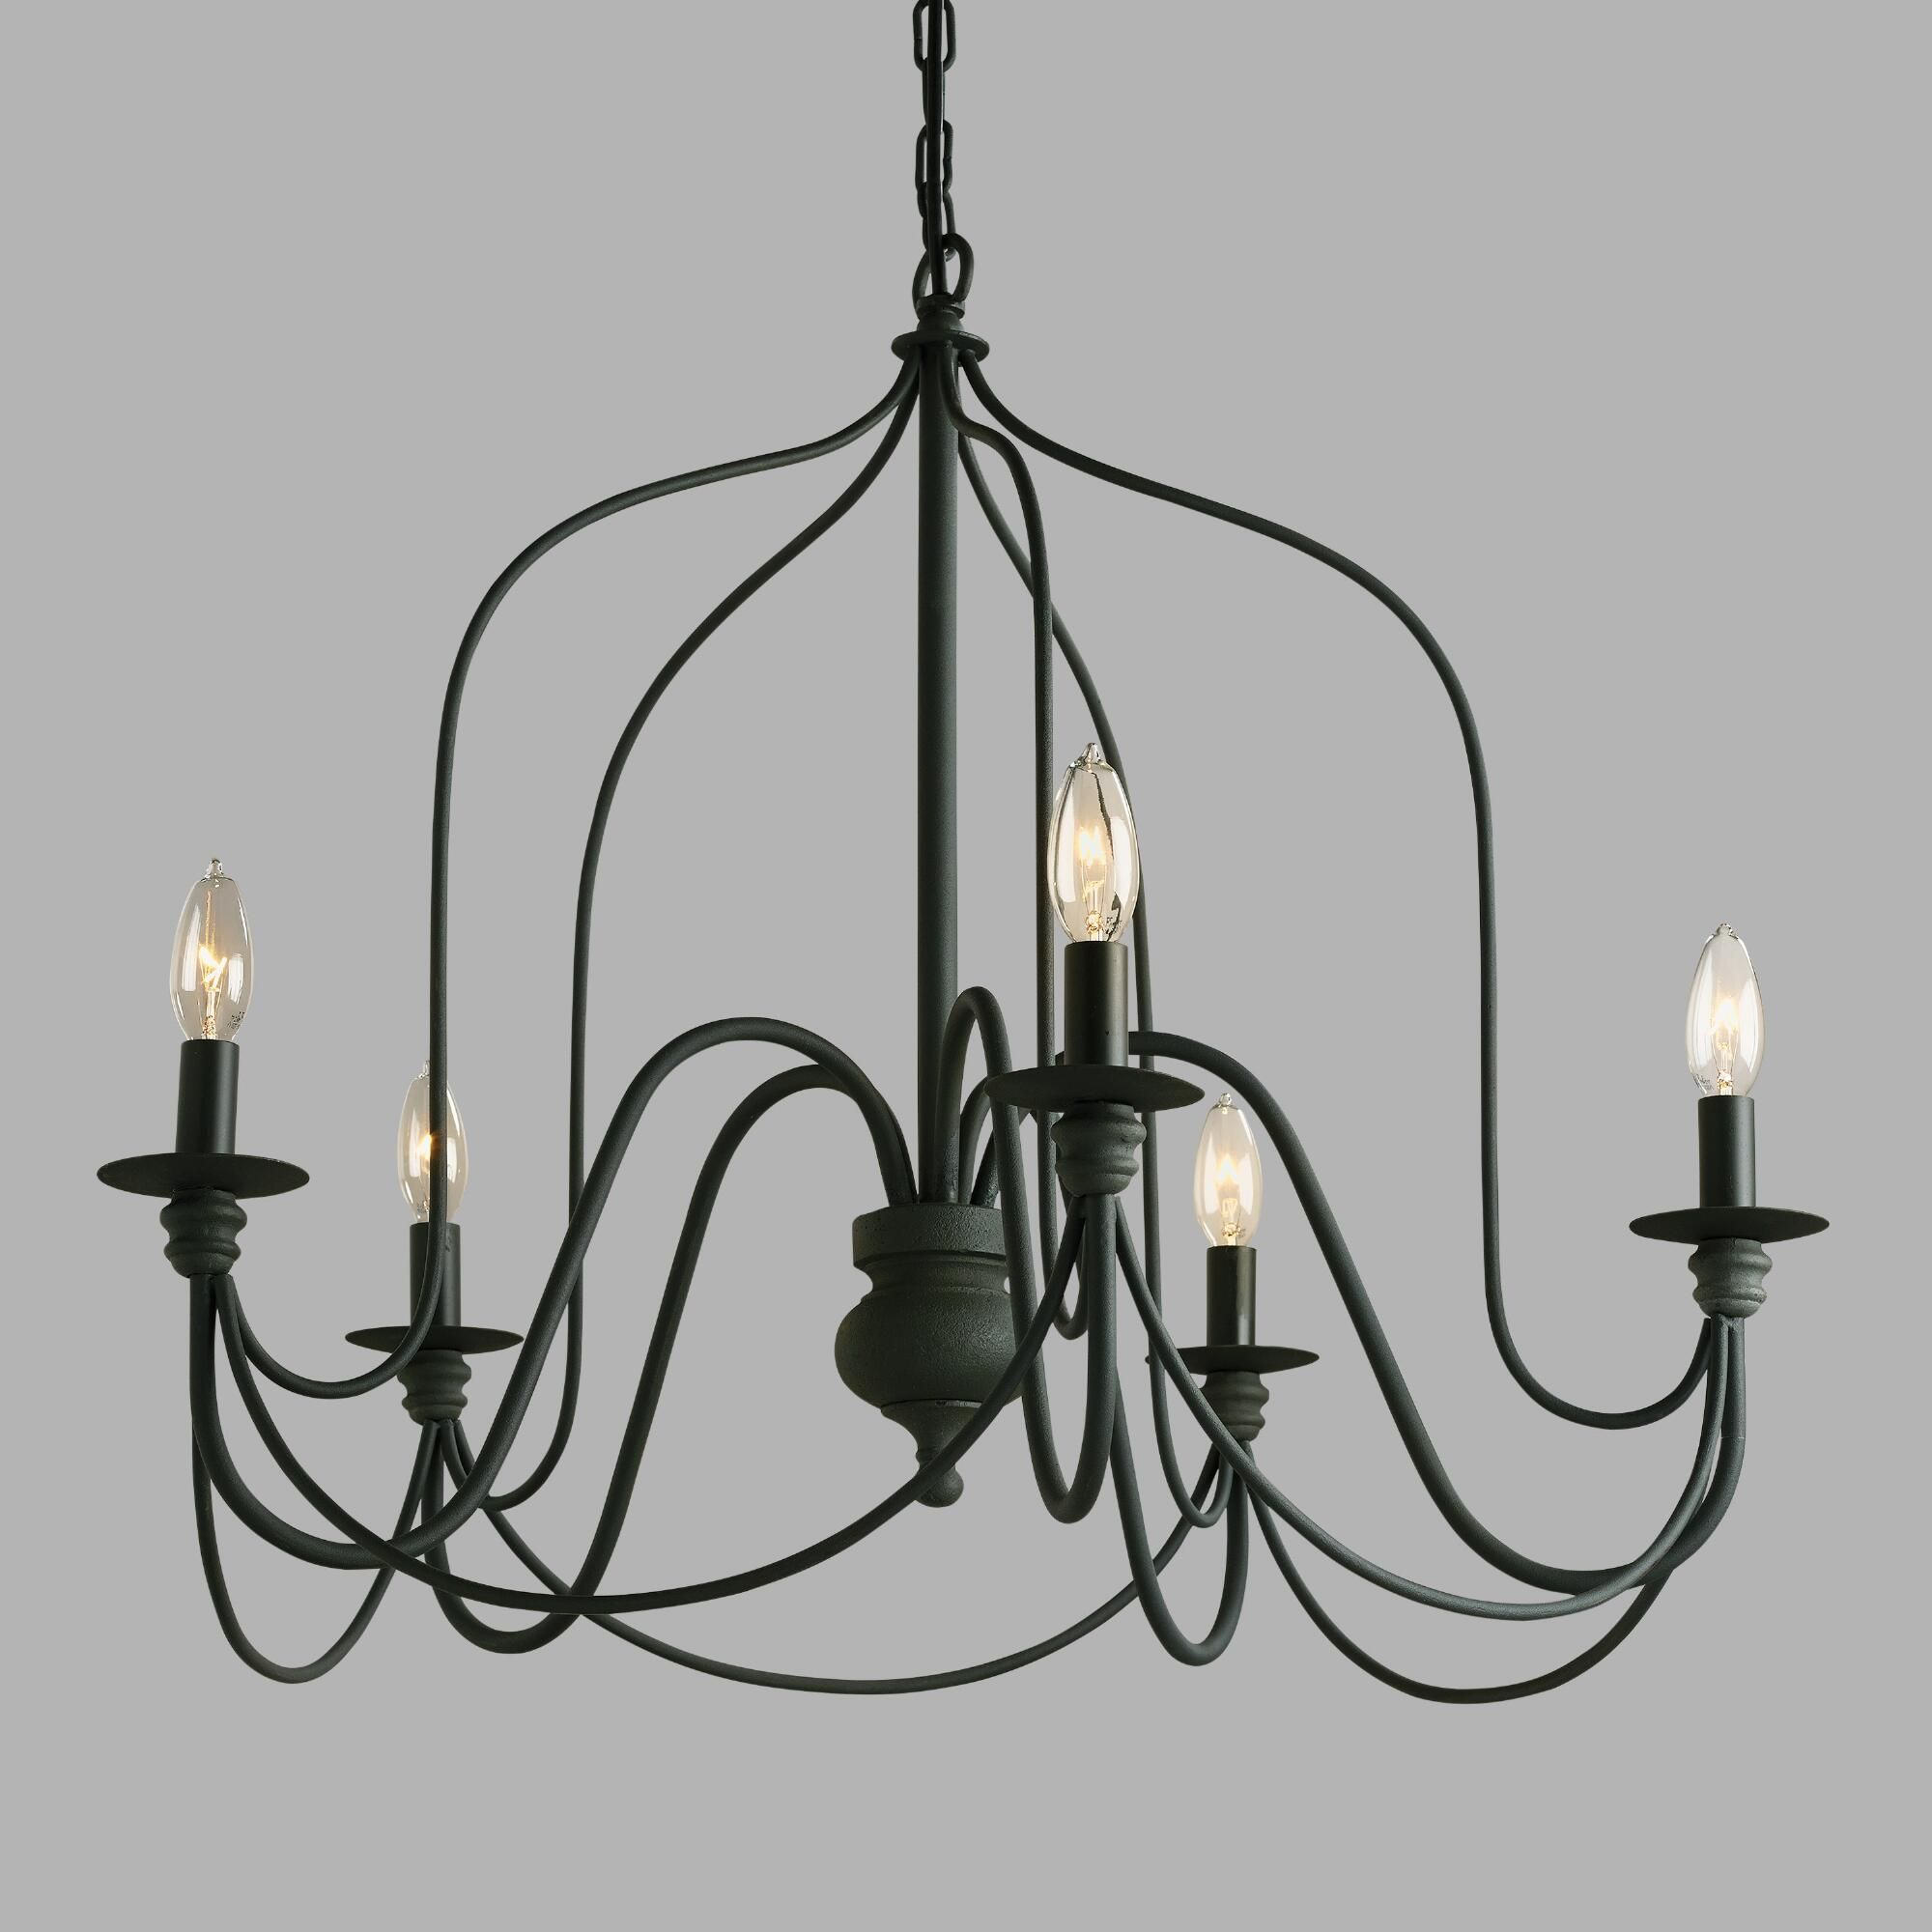 Rustic wire chandelier gray metal by world market aloadofball